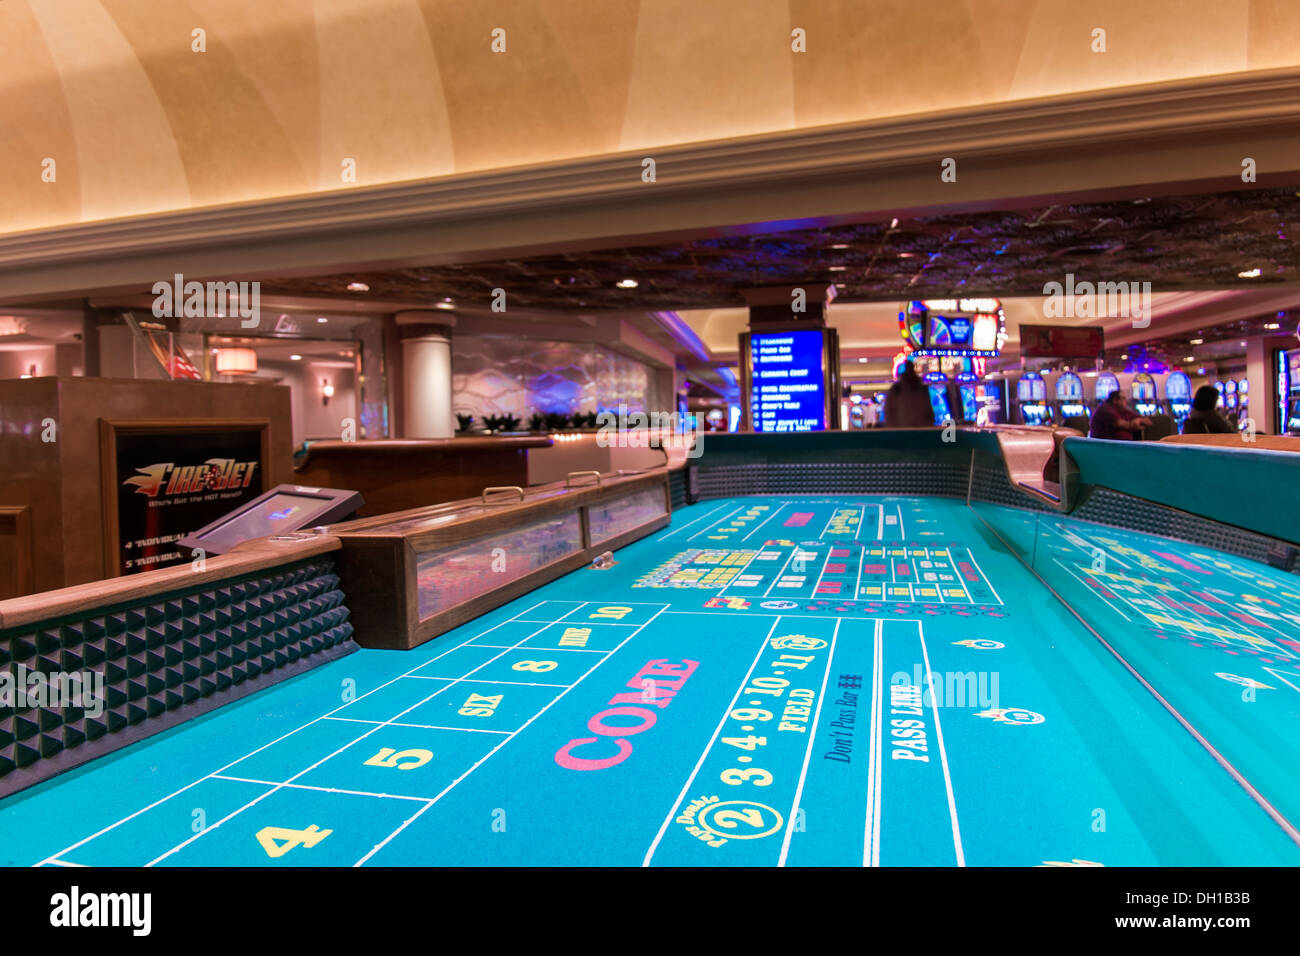 Craps Table - Casino Interior, Harrah's Hotel and Casino, Las Vegas, Nevada, USA - Stock Image